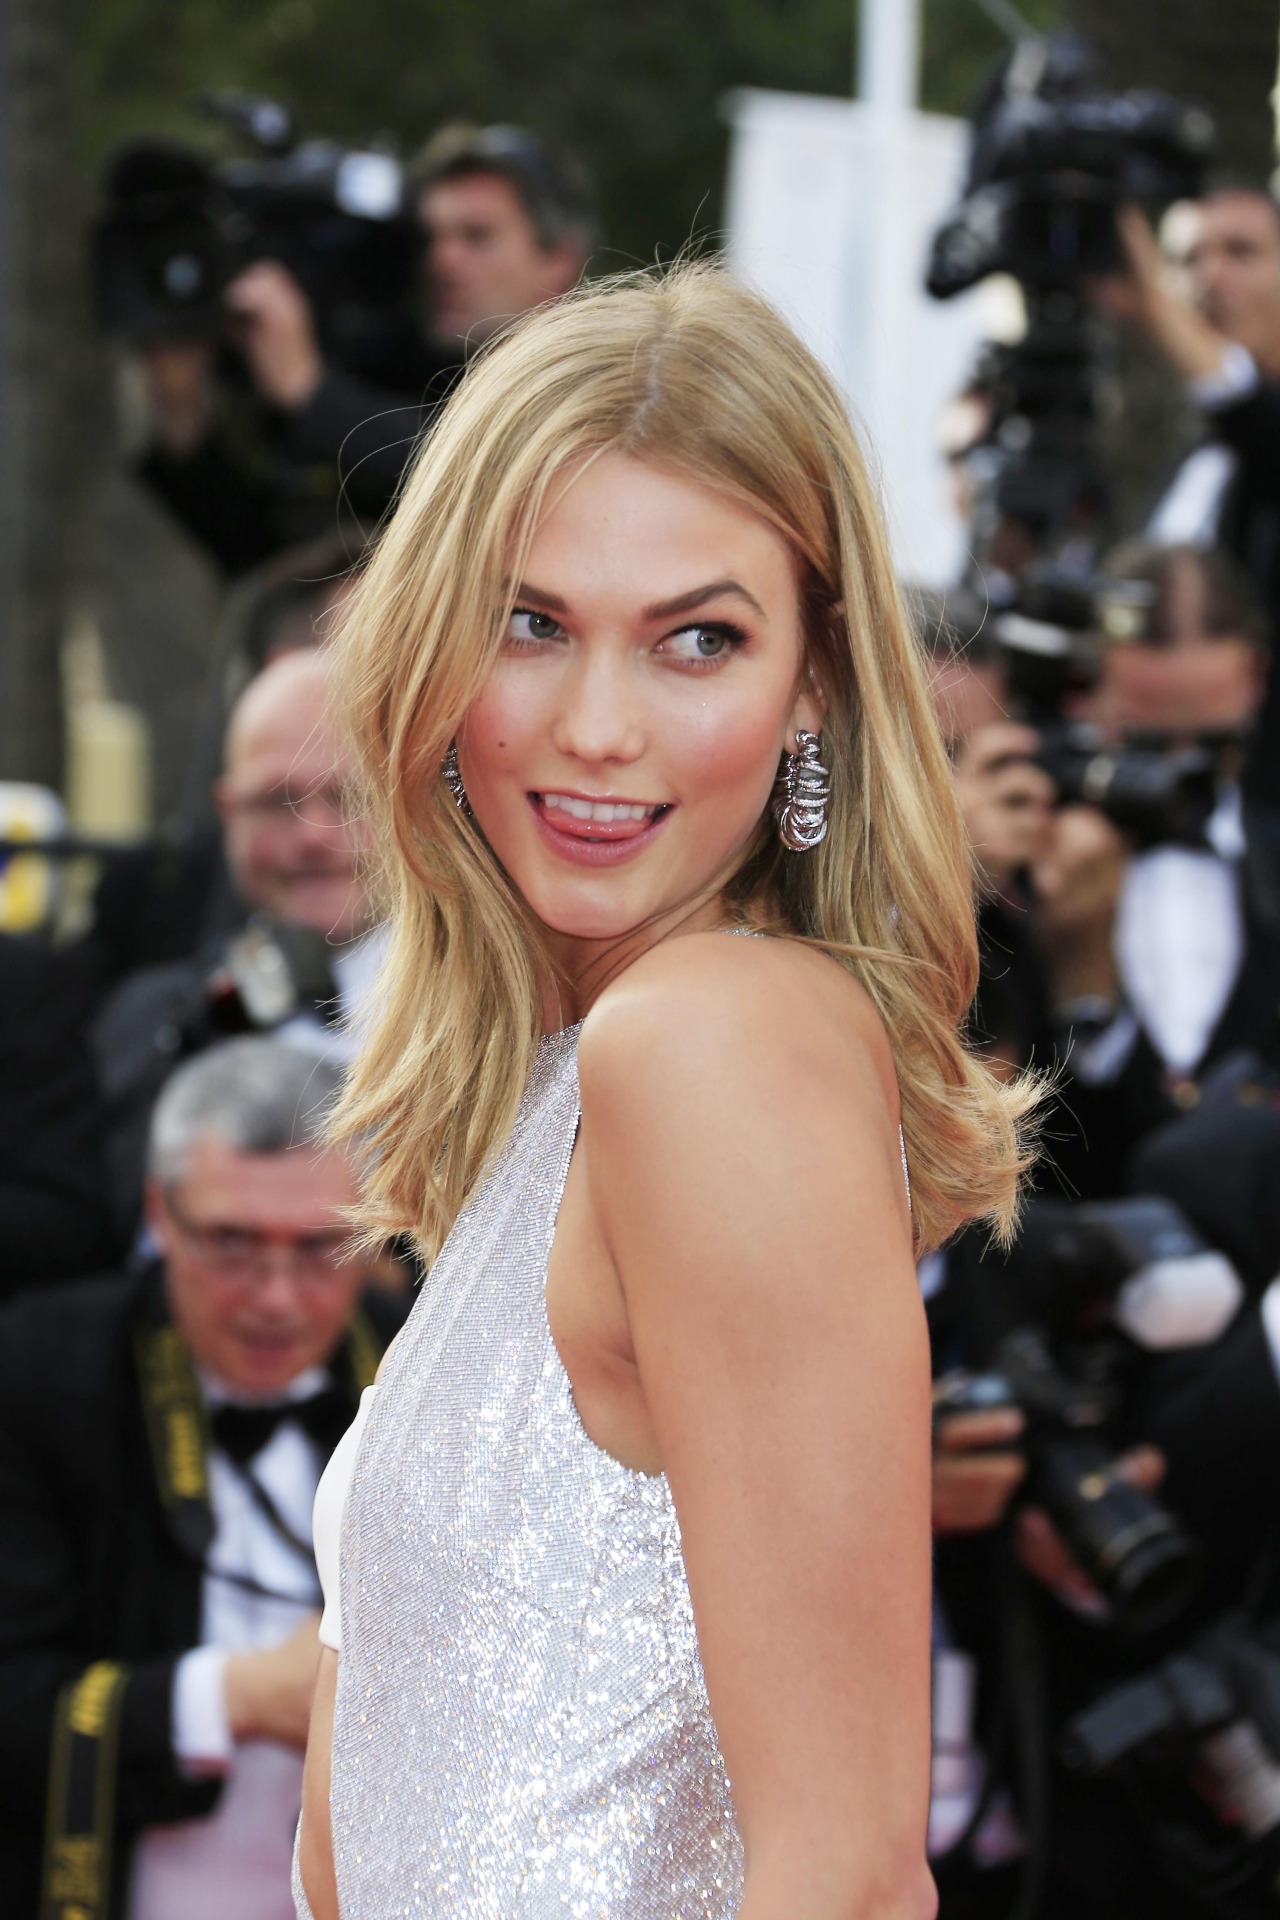 The 26 Best Karlie Kloss Pictures Of All Time